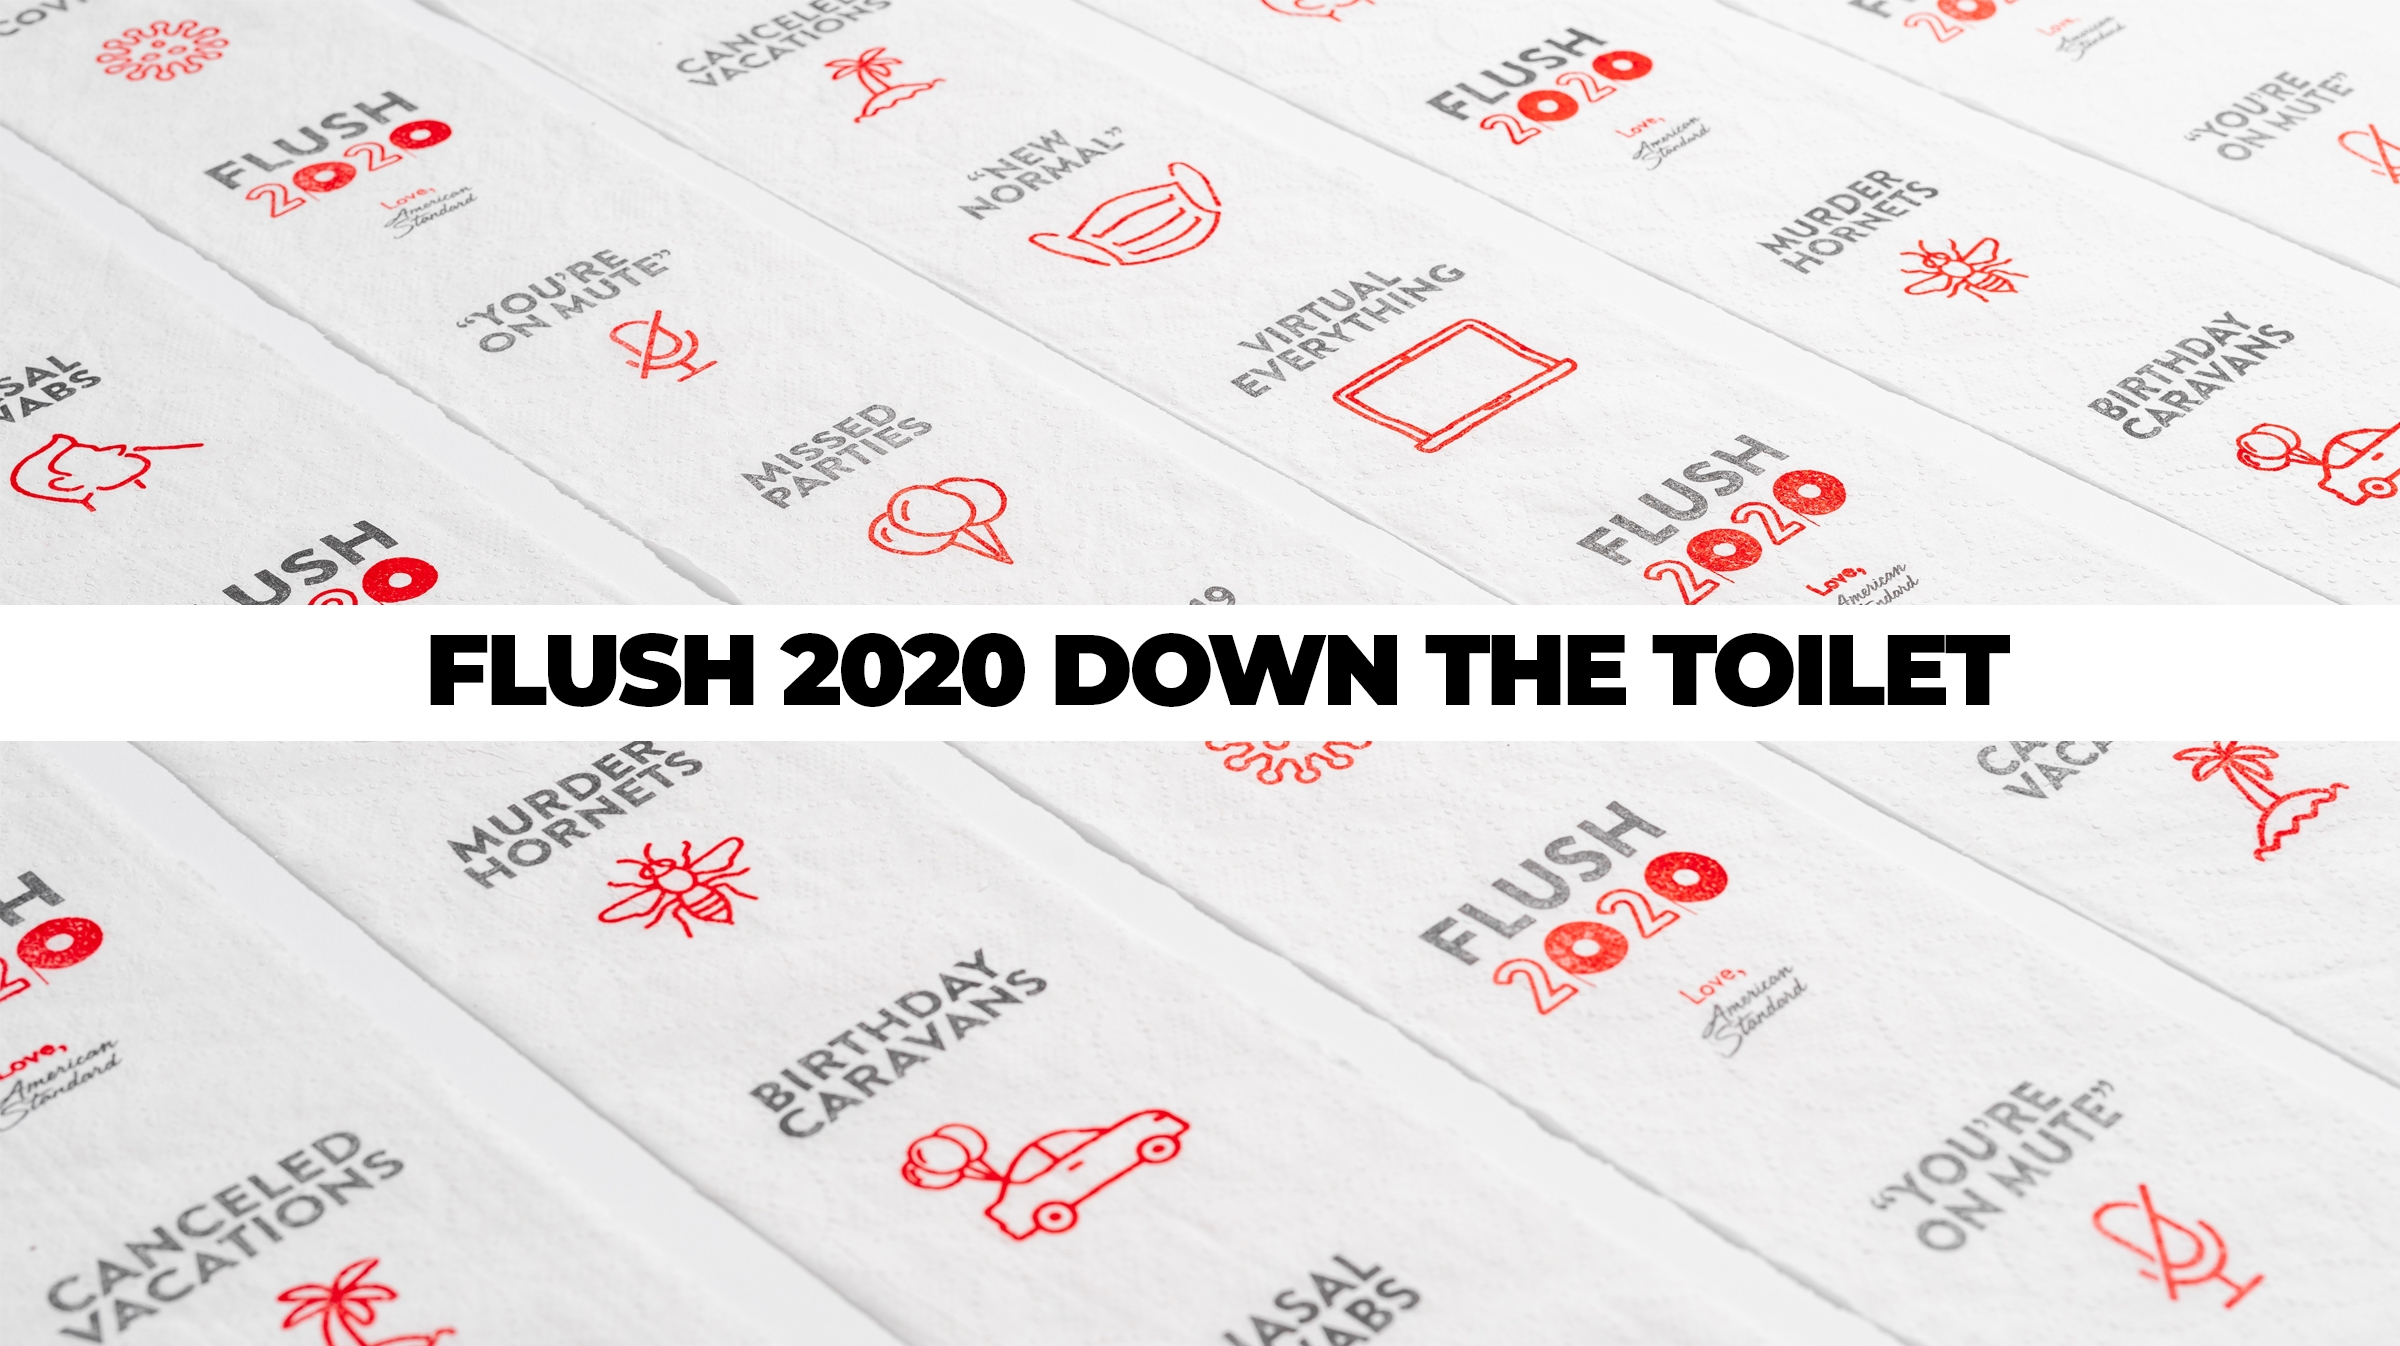 American Standard Invites Everyone to Literally #Flush2020